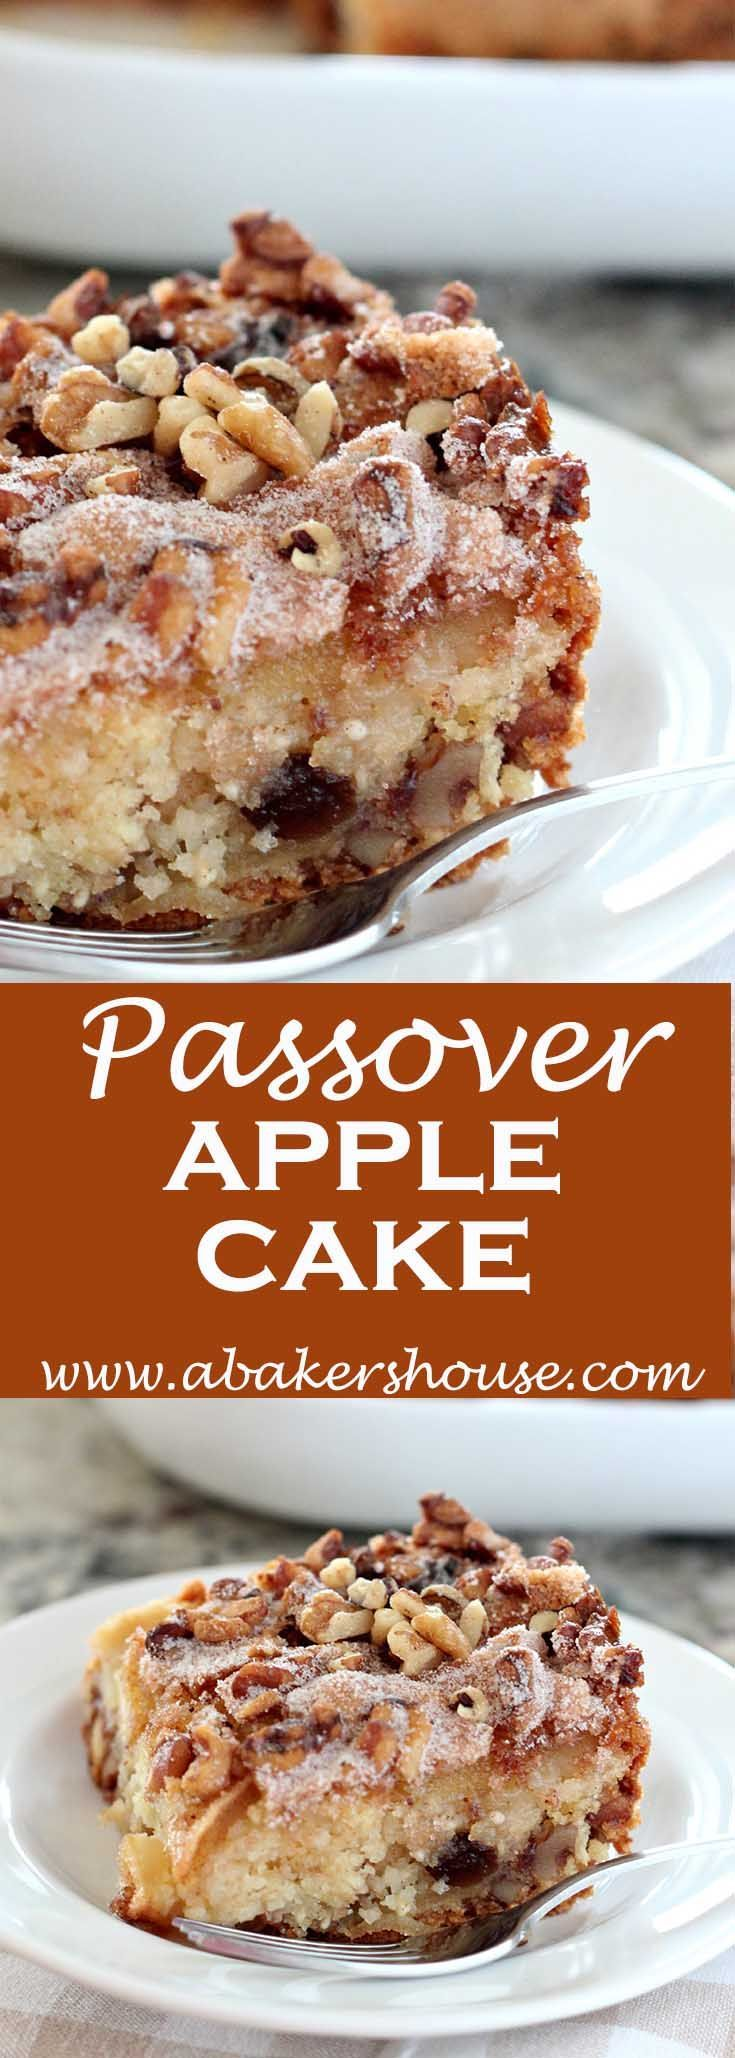 This easy apple cake could start your day for breakfast, be served as an afternoon snack or even show up on a dessert table at Passover or any time of year. The recipe was found here and is Arthur Schwartz's recipe for Passover Pareve Apple Cake.